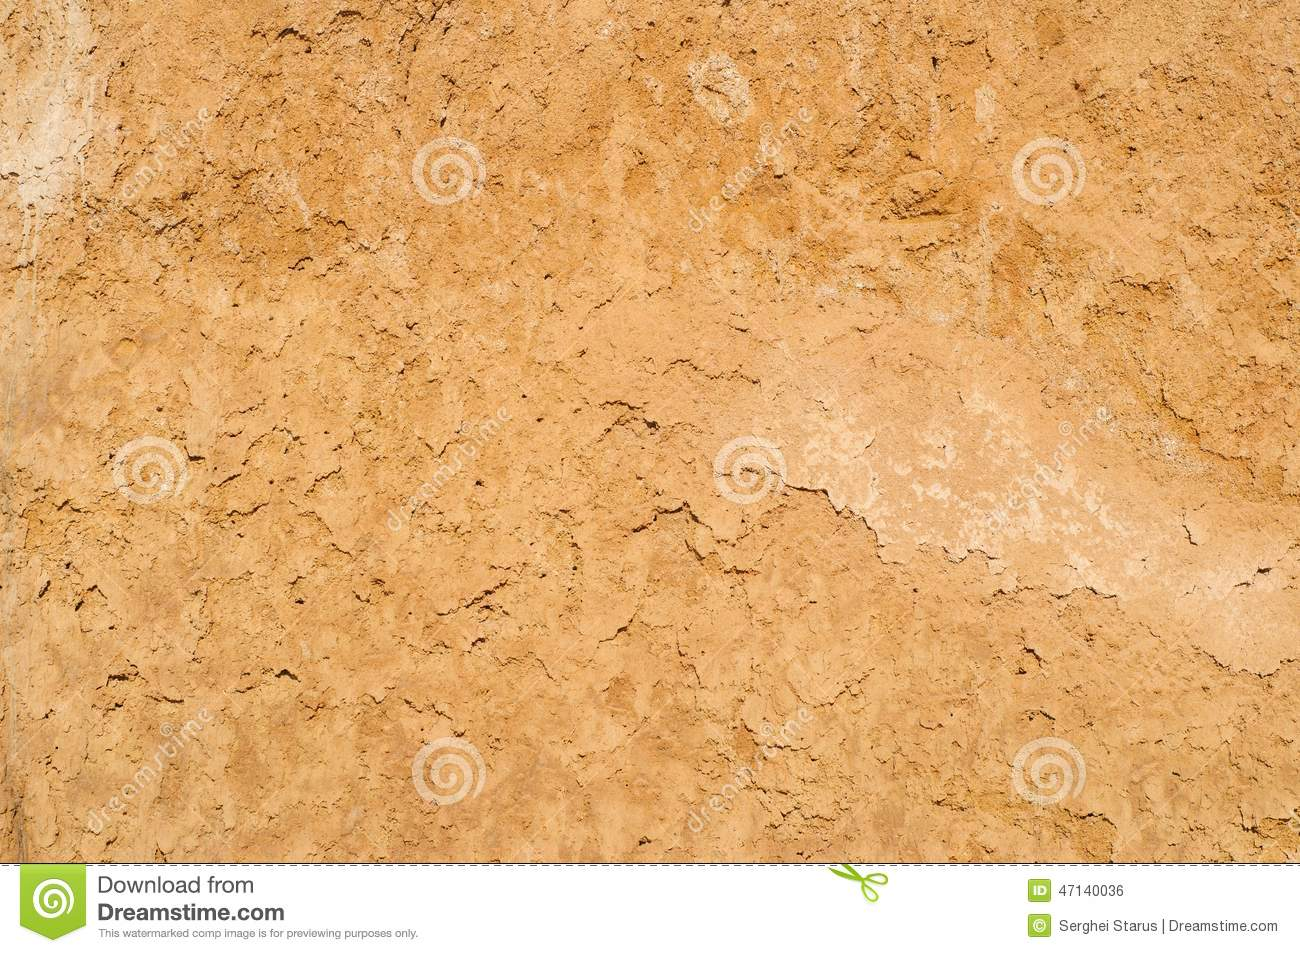 Clay soil texture background dried surface stock photo image of clay soil texture background dried surface sciox Images